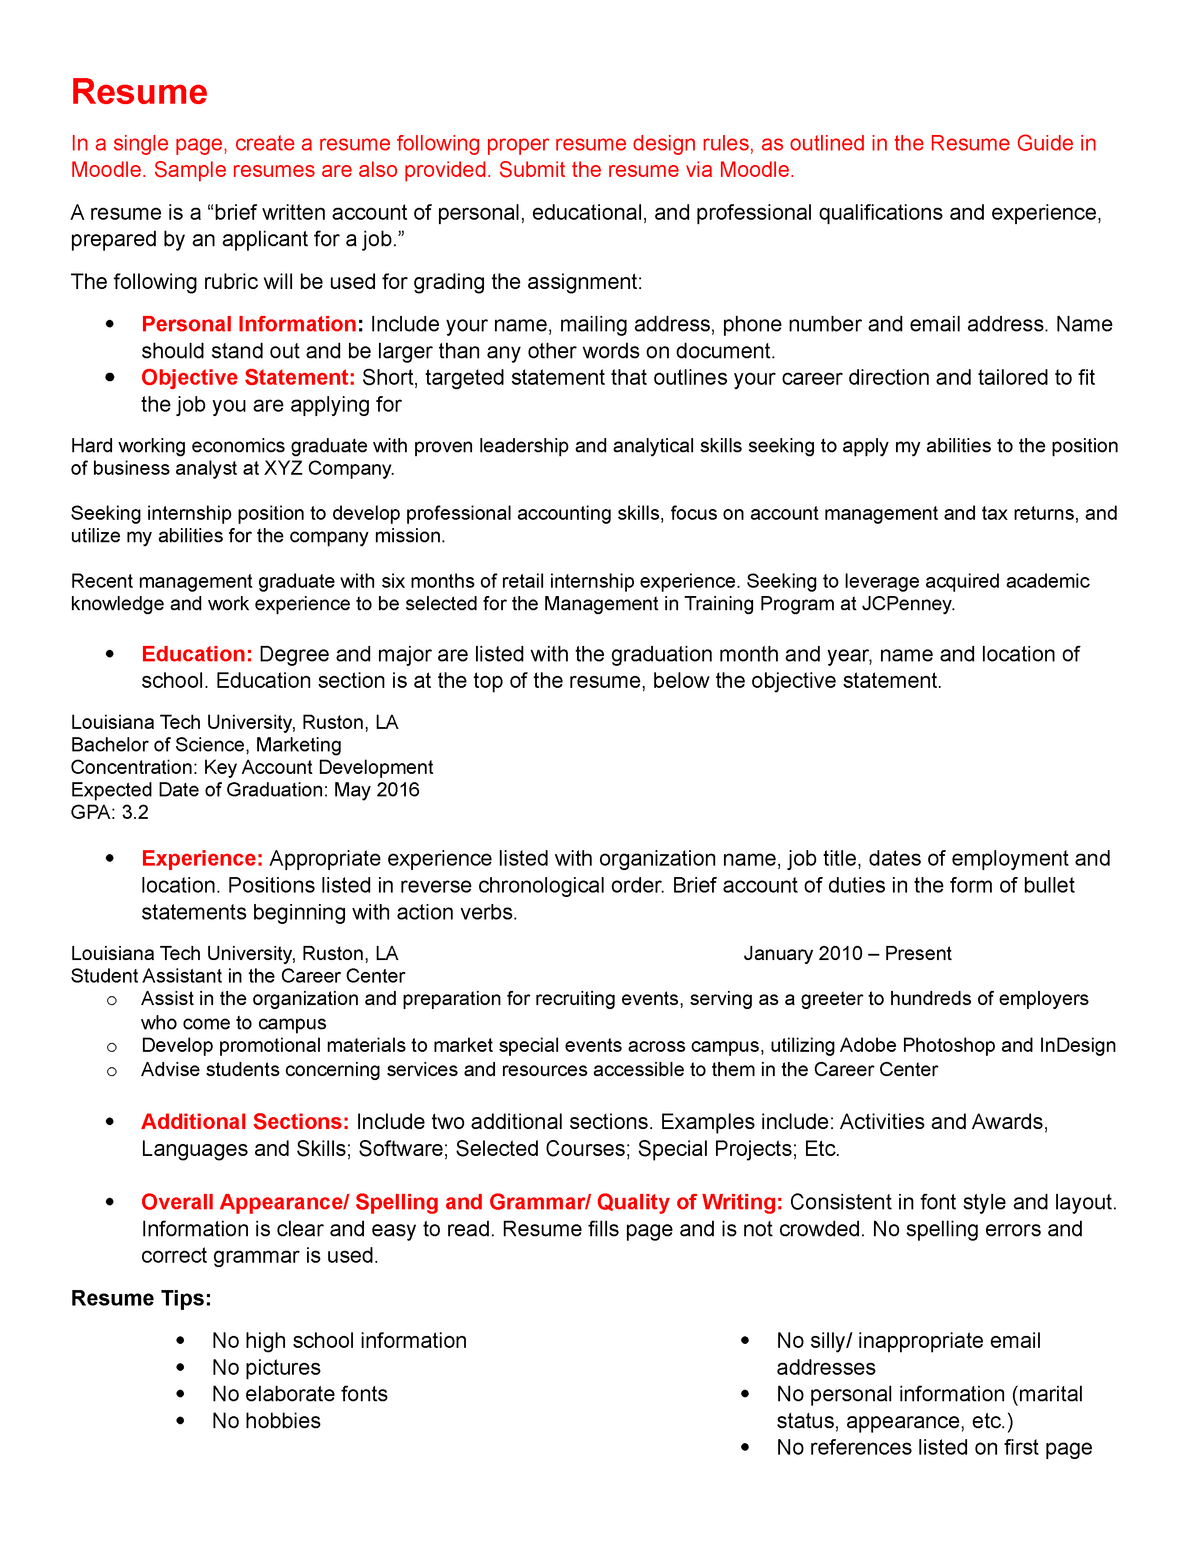 Resume And Cover Letter Assignment Studocu